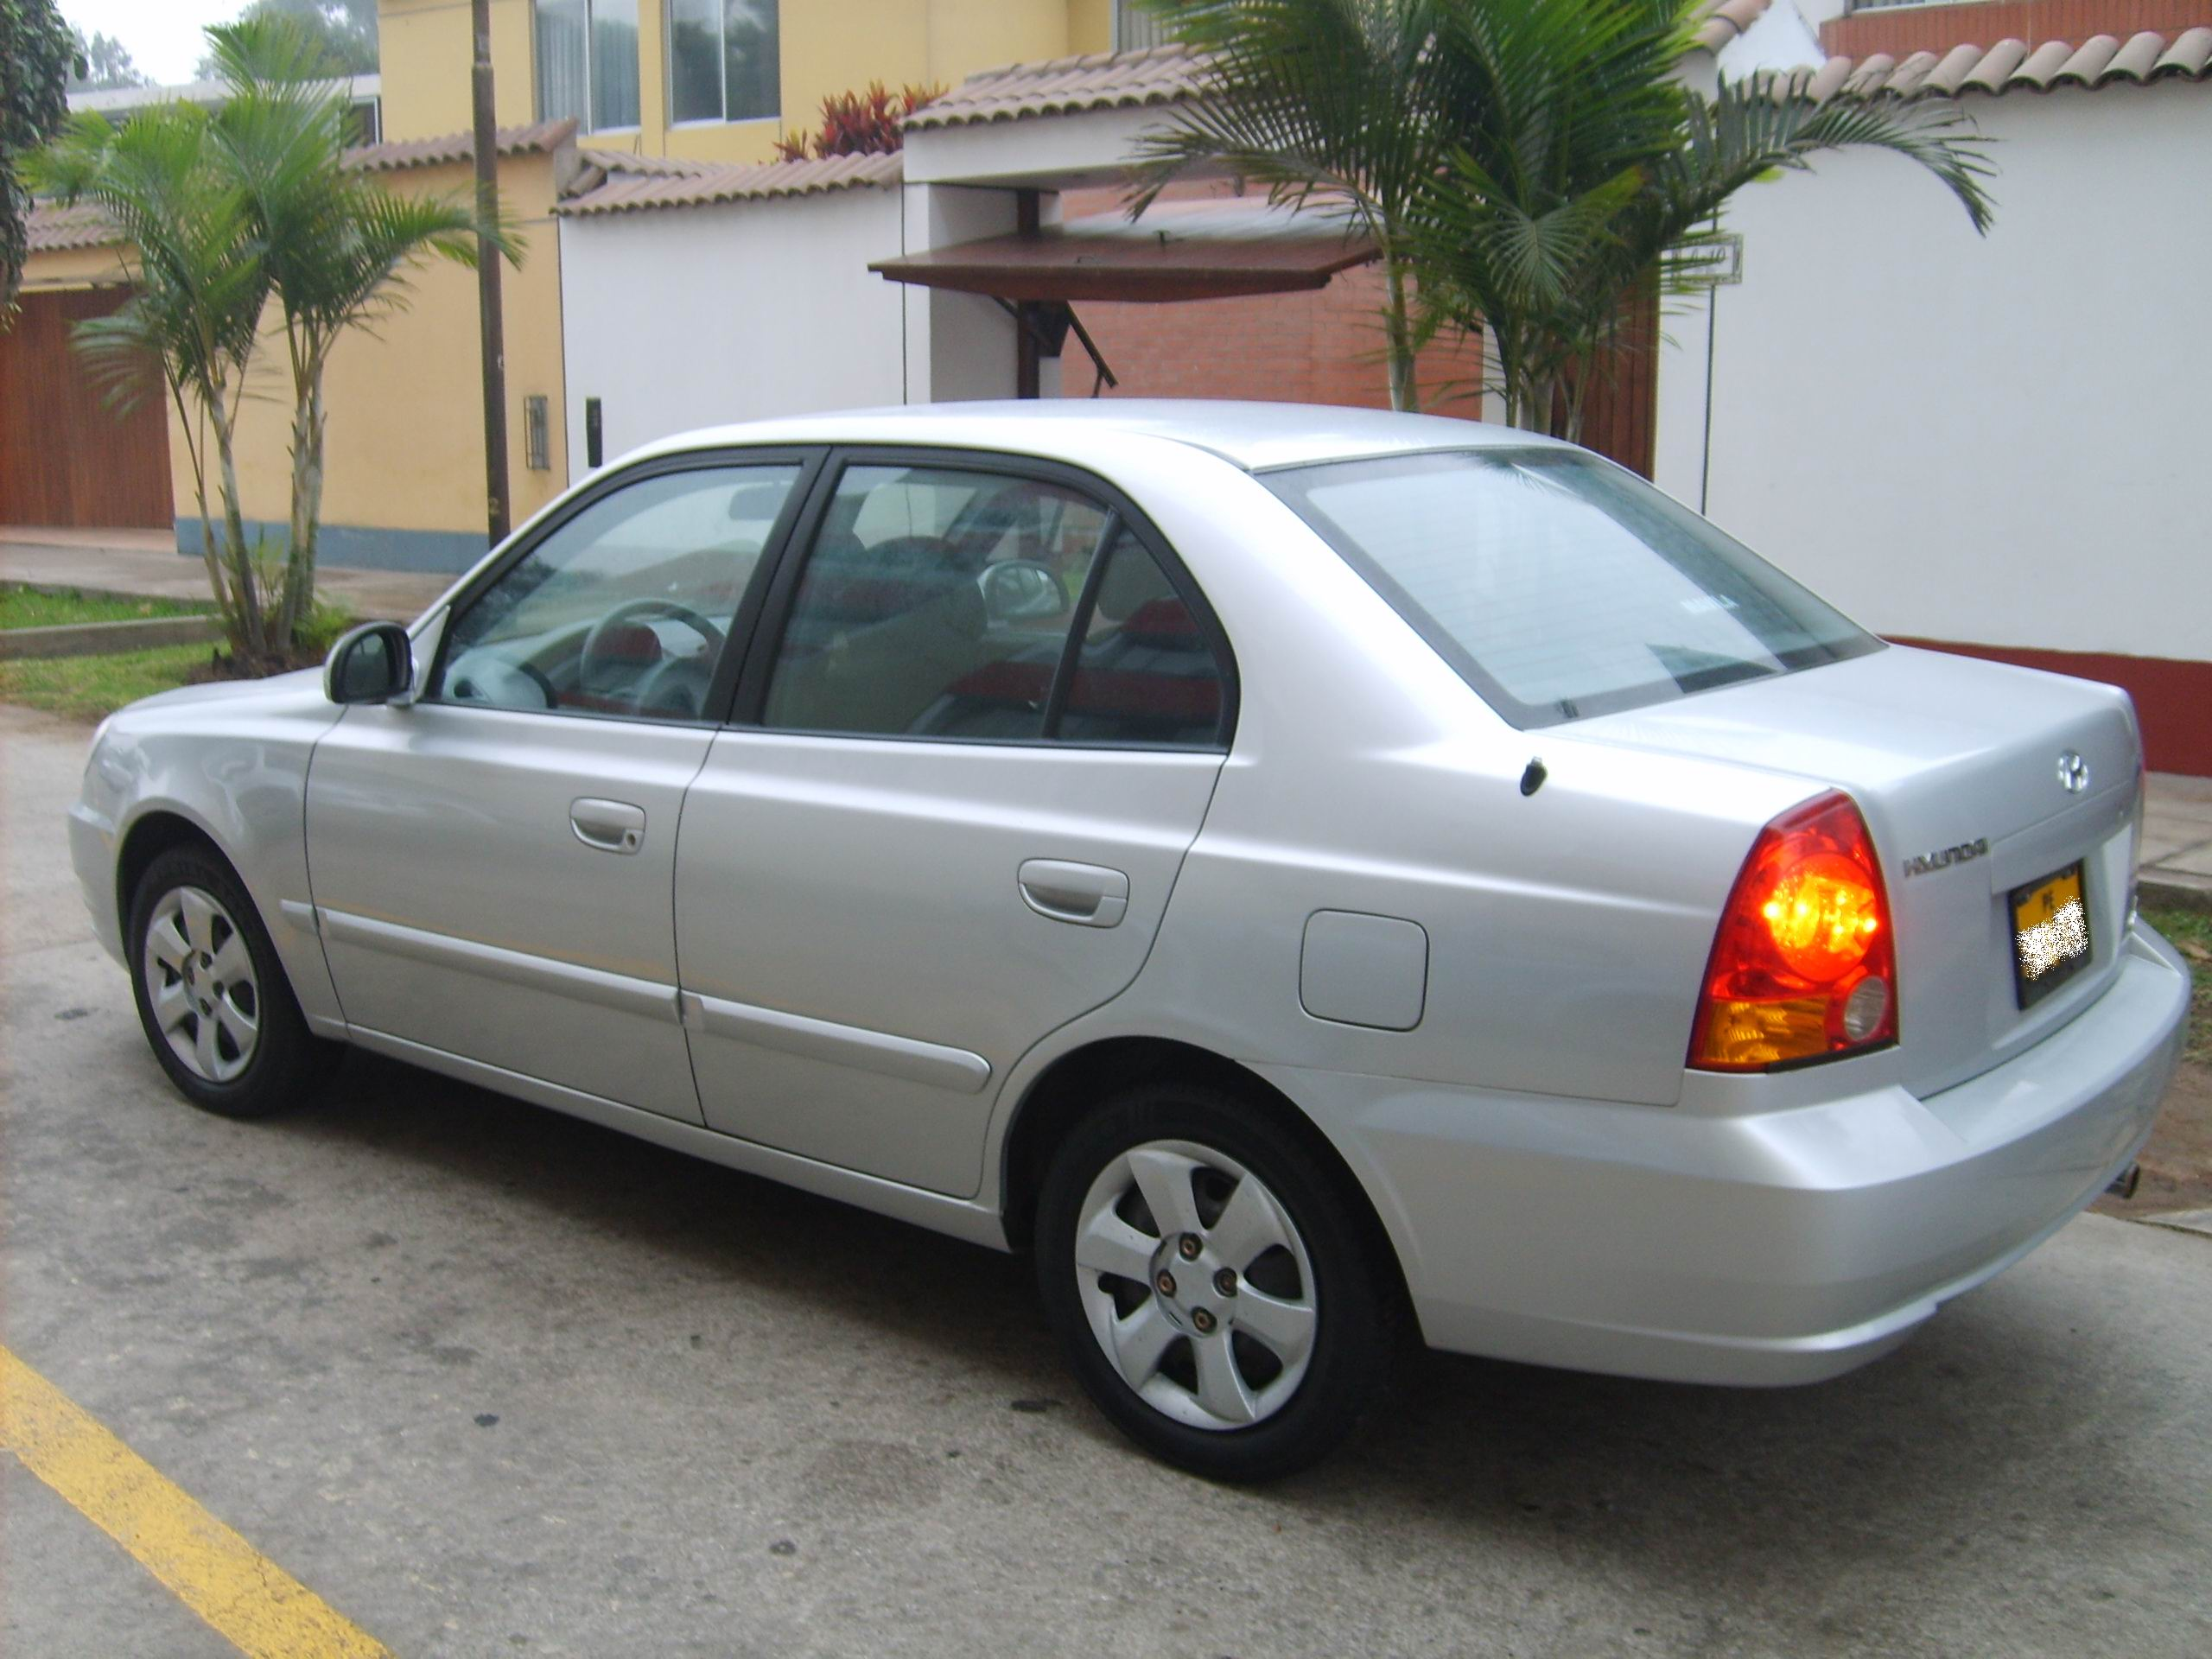 2004 Hyundai Accent Information And Photos Momentcar